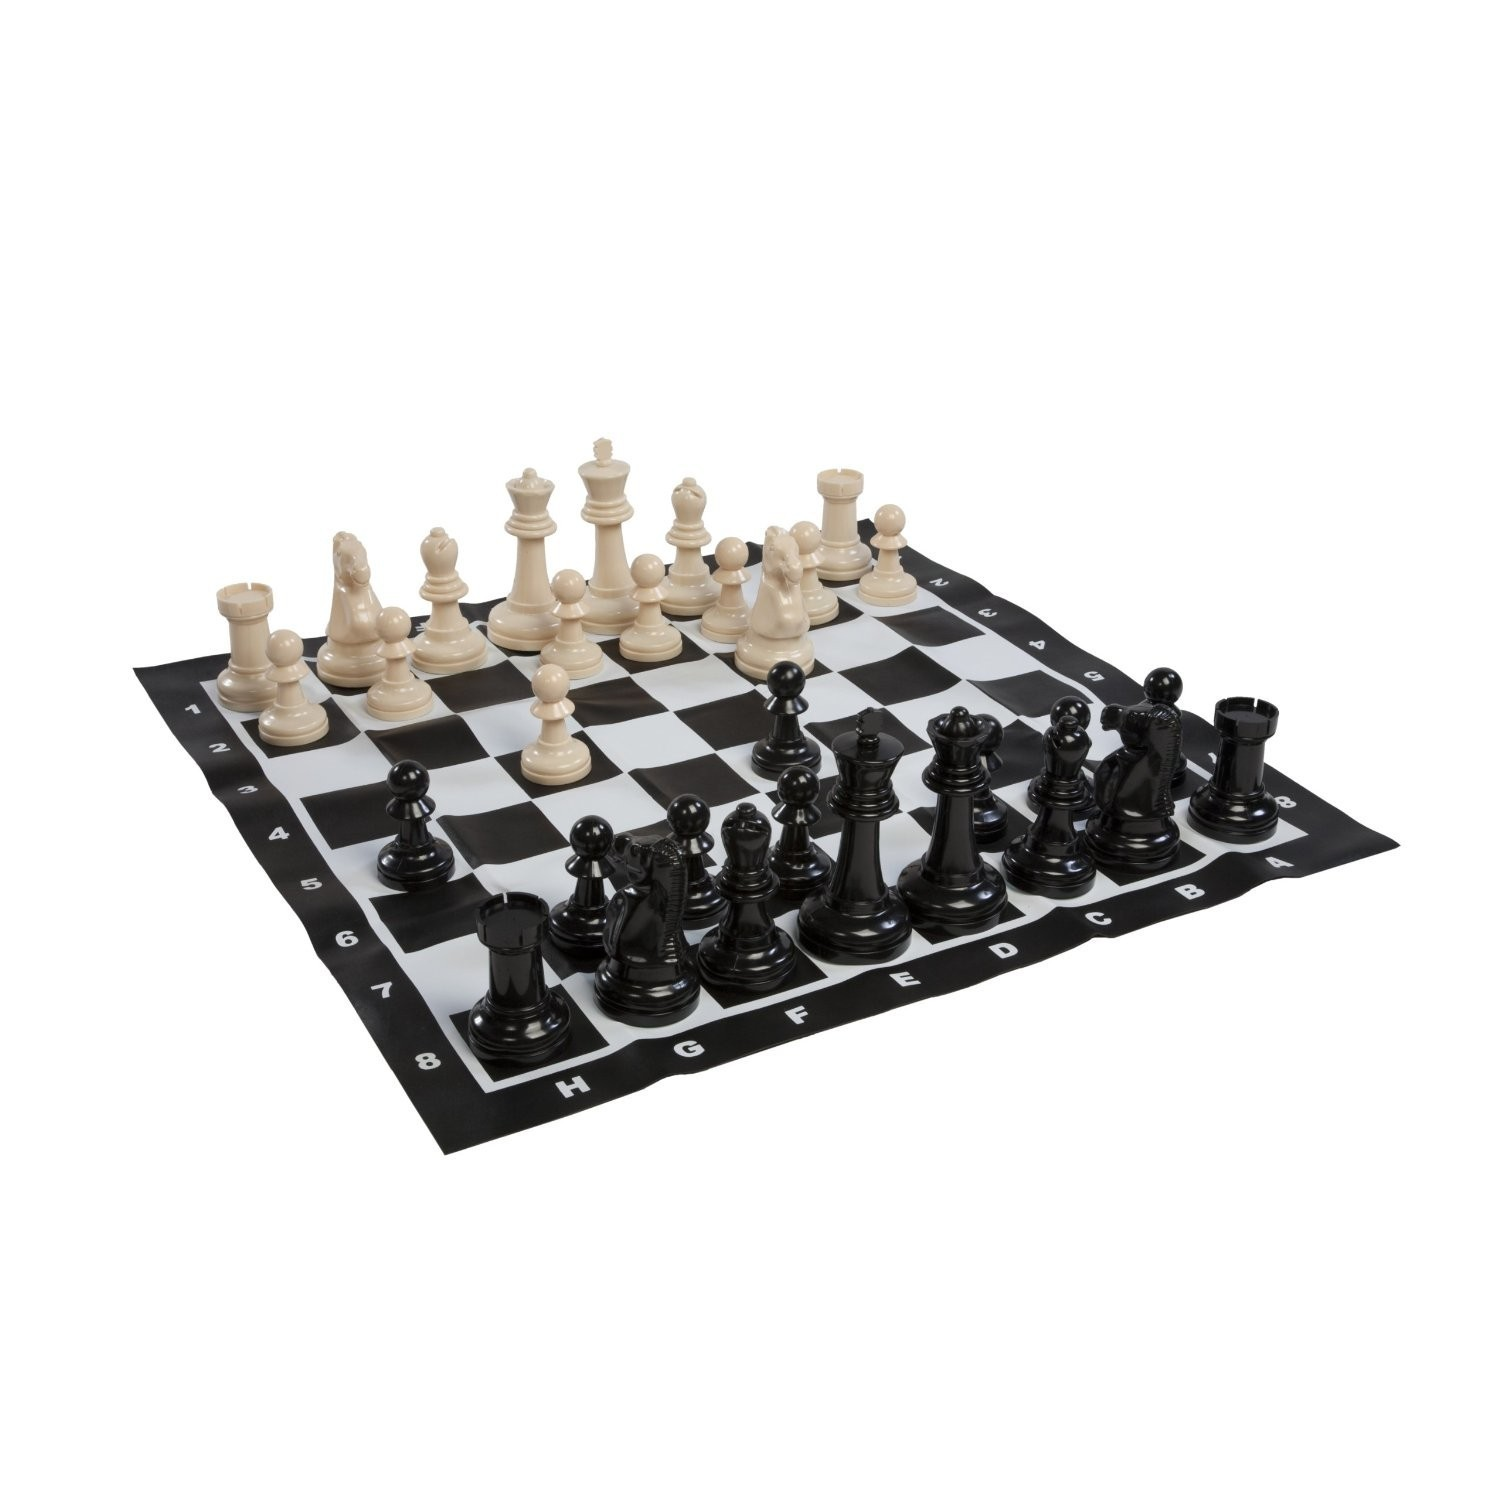 outdoor schach outdoor spiele f r drau en kinder spielzeug ebay. Black Bedroom Furniture Sets. Home Design Ideas